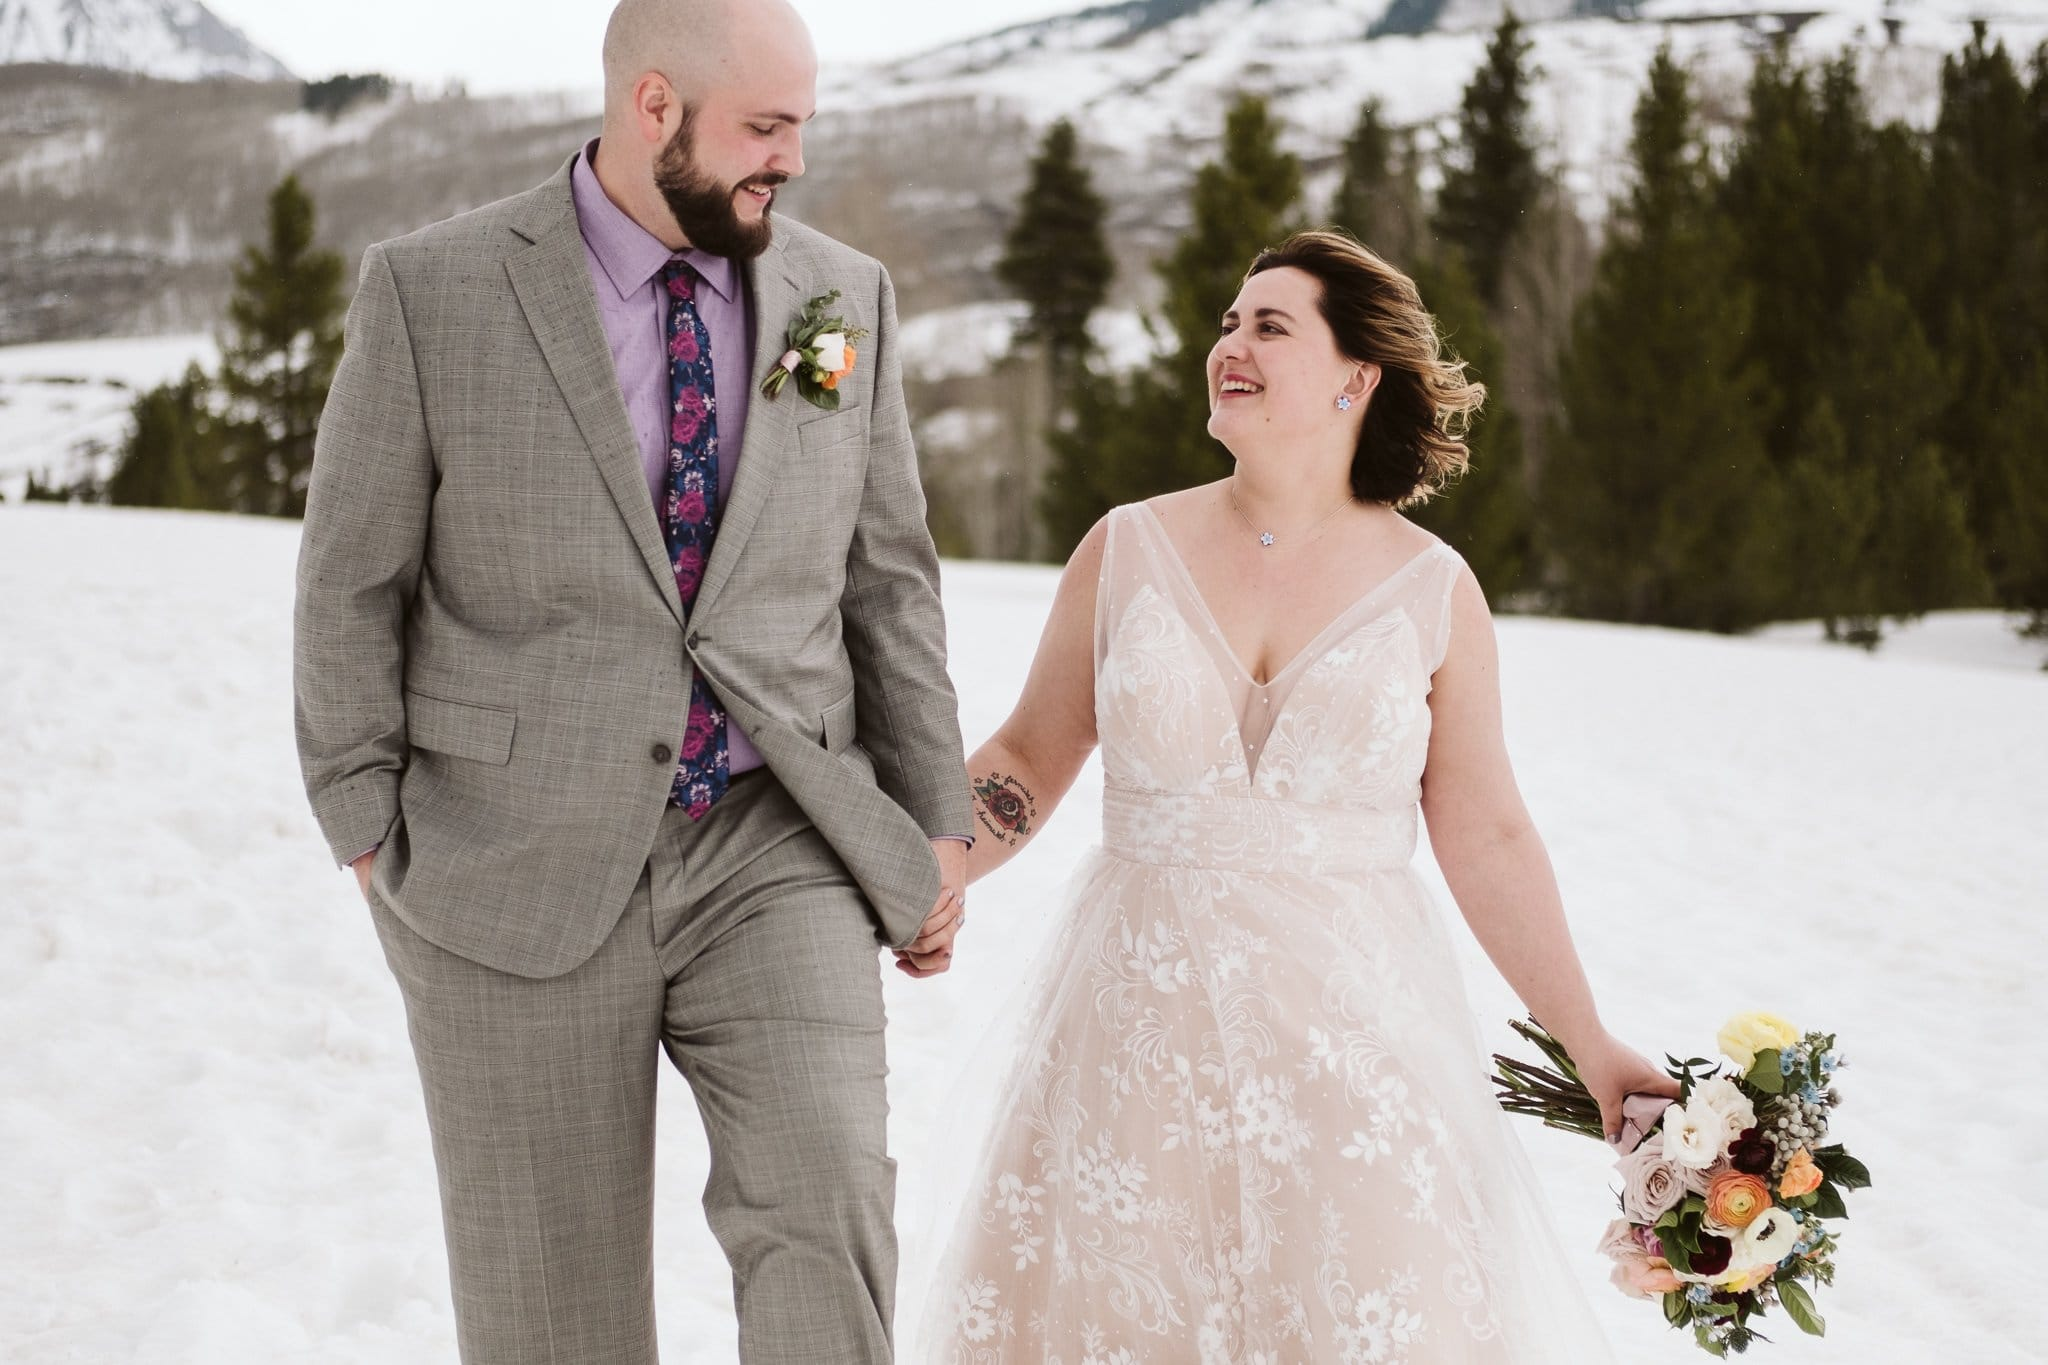 Bride and groom hiking in snowy landscape, winter elopement in the Colorado mountains